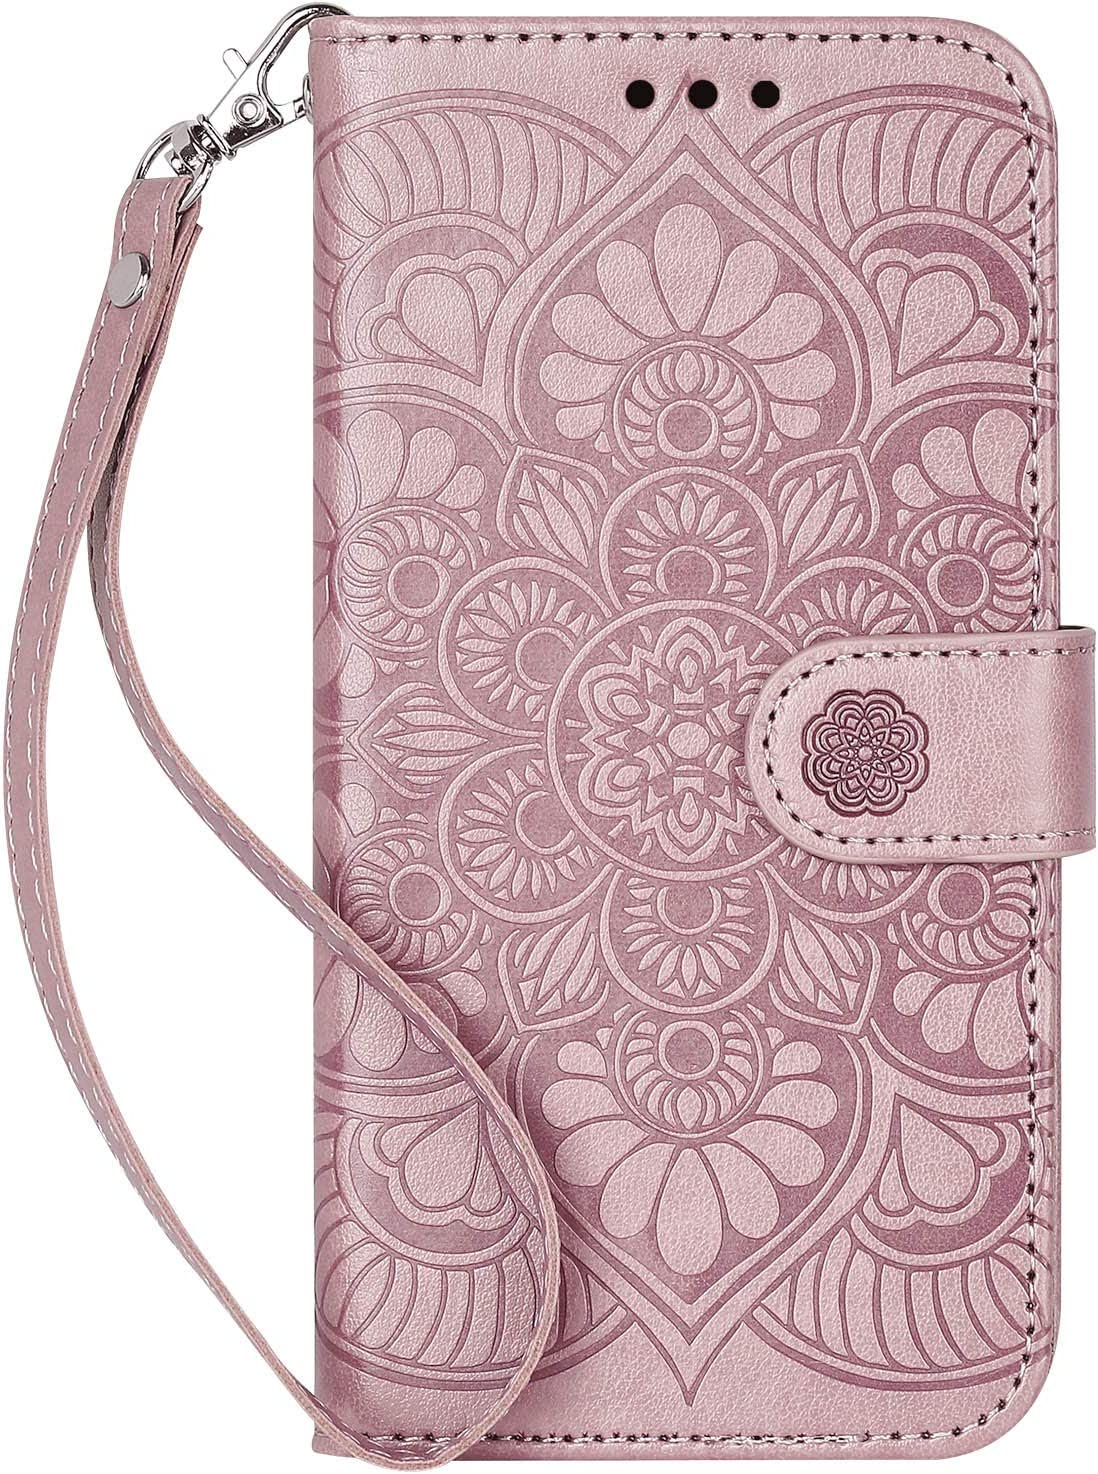 Ateeky iPhone 12 Mini Wallet Case, [Stand Feature] Protective PU Leather Flip Cover with Credit Card Slot[Side Cash Pocket (Rose Gold)